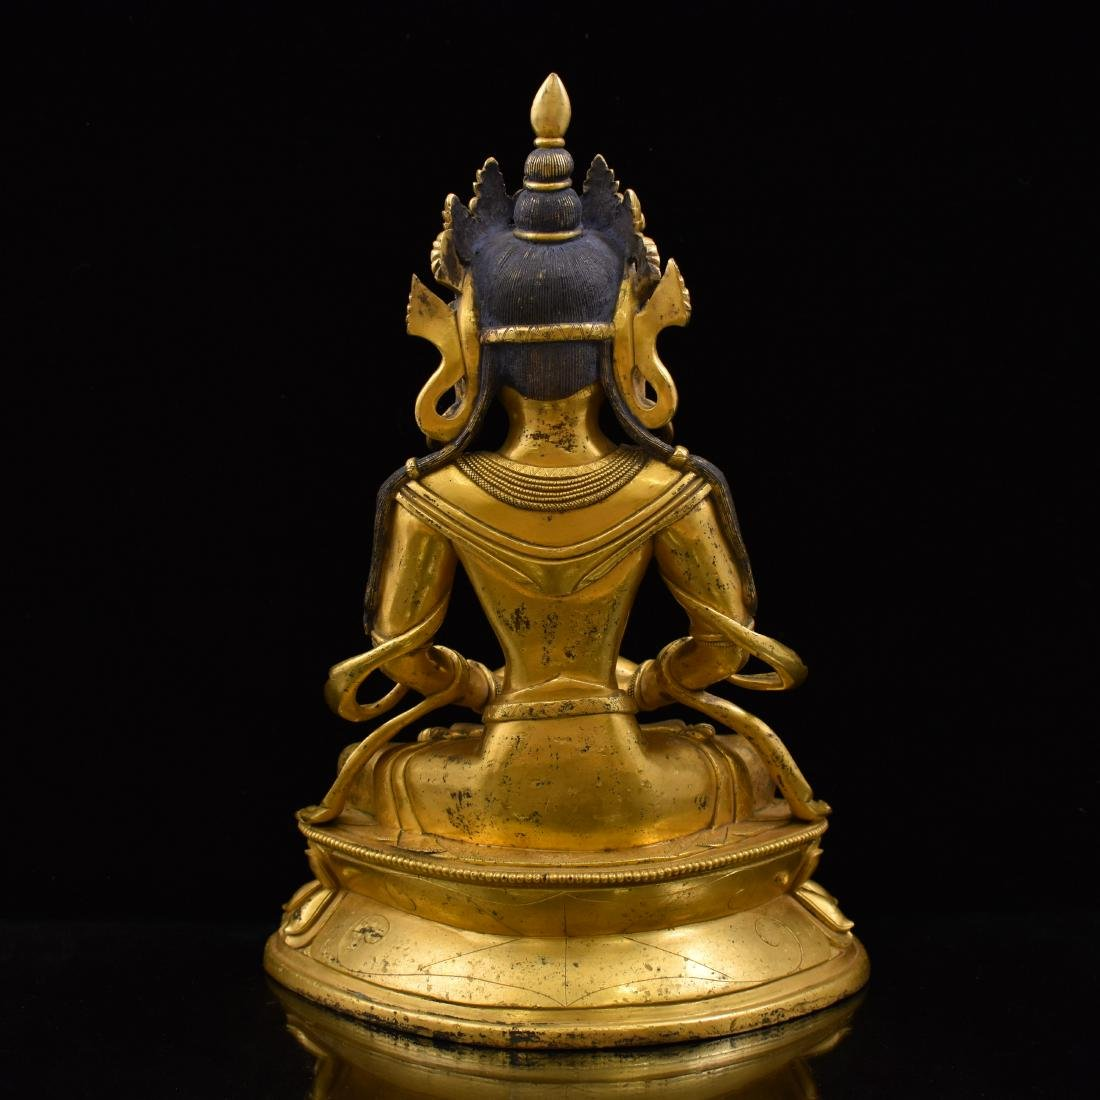 QING GILT BRONZE SEATED AMITAYUS BUDDHA - 4